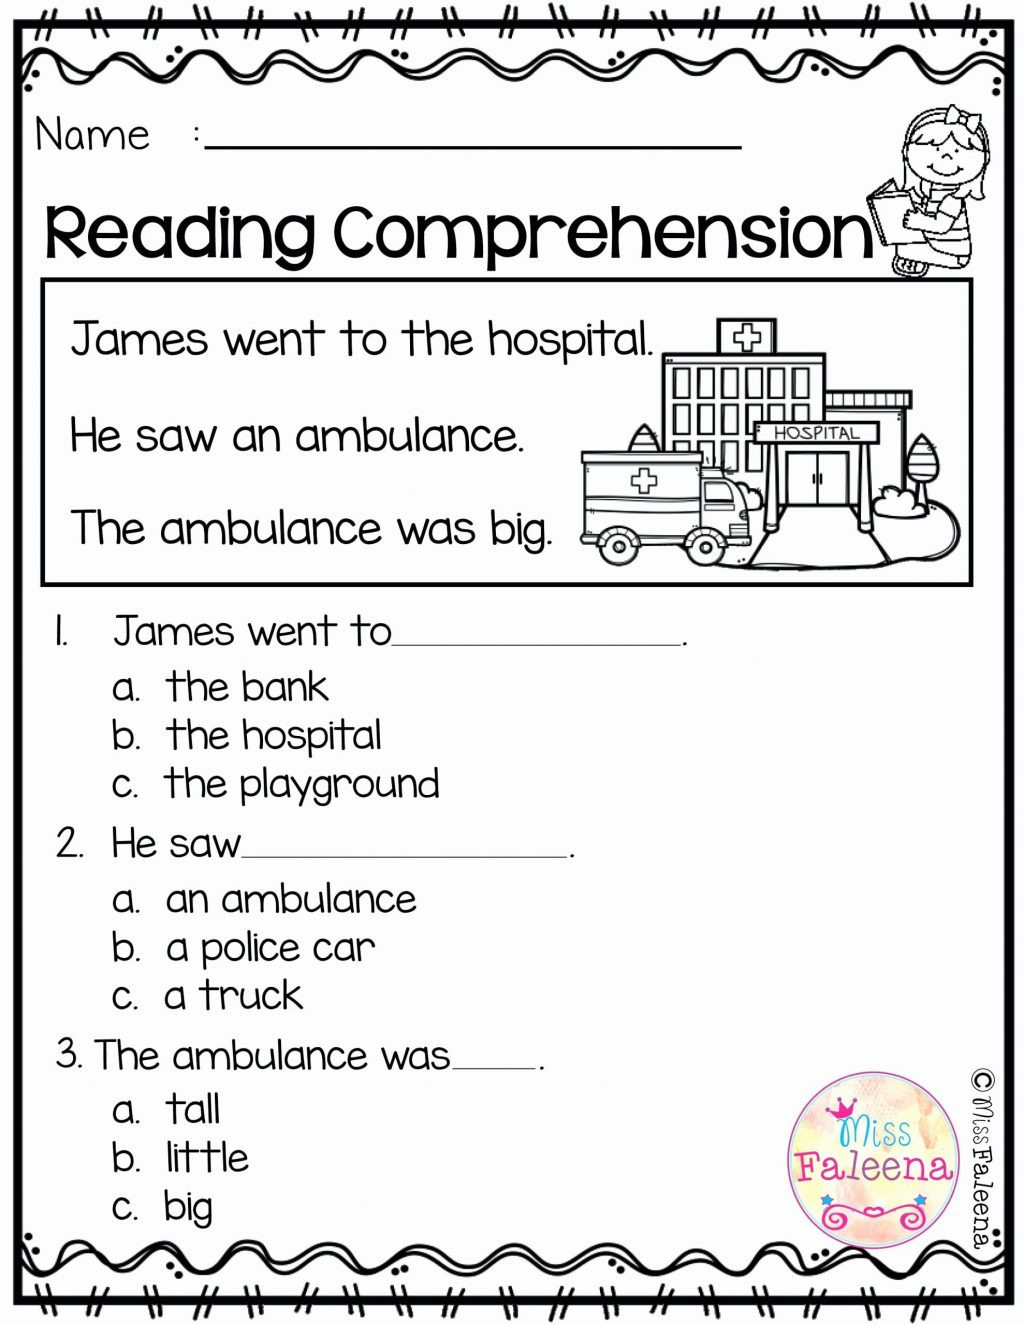 Kindergarten Reading Comprehension Worksheet Worksheet Literacy Worksheets for Kindergarten Freeable